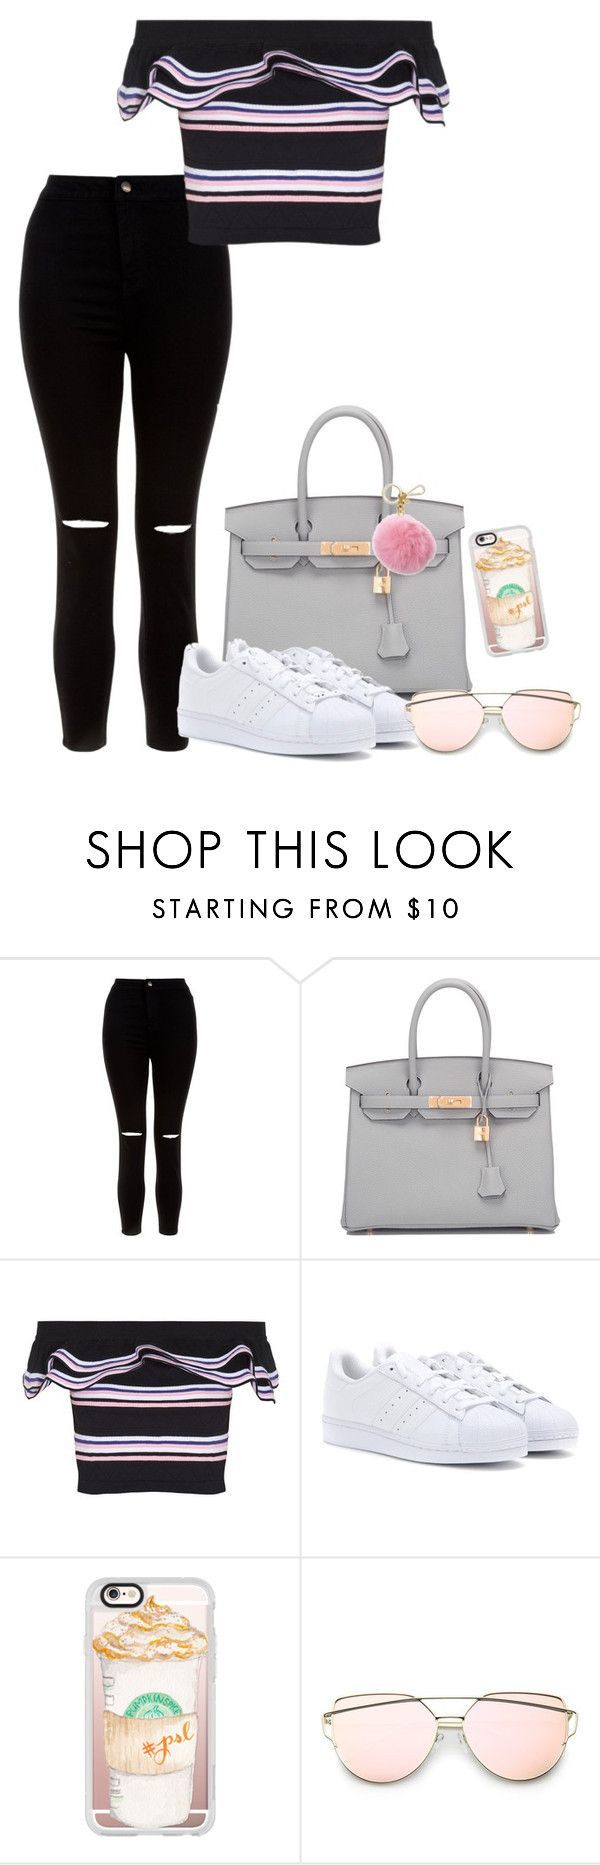 """City"" by grraciie-386 on Polyvore featuring New Look, Hermès, MSGM, adidas, Casetify and Michael Kors"